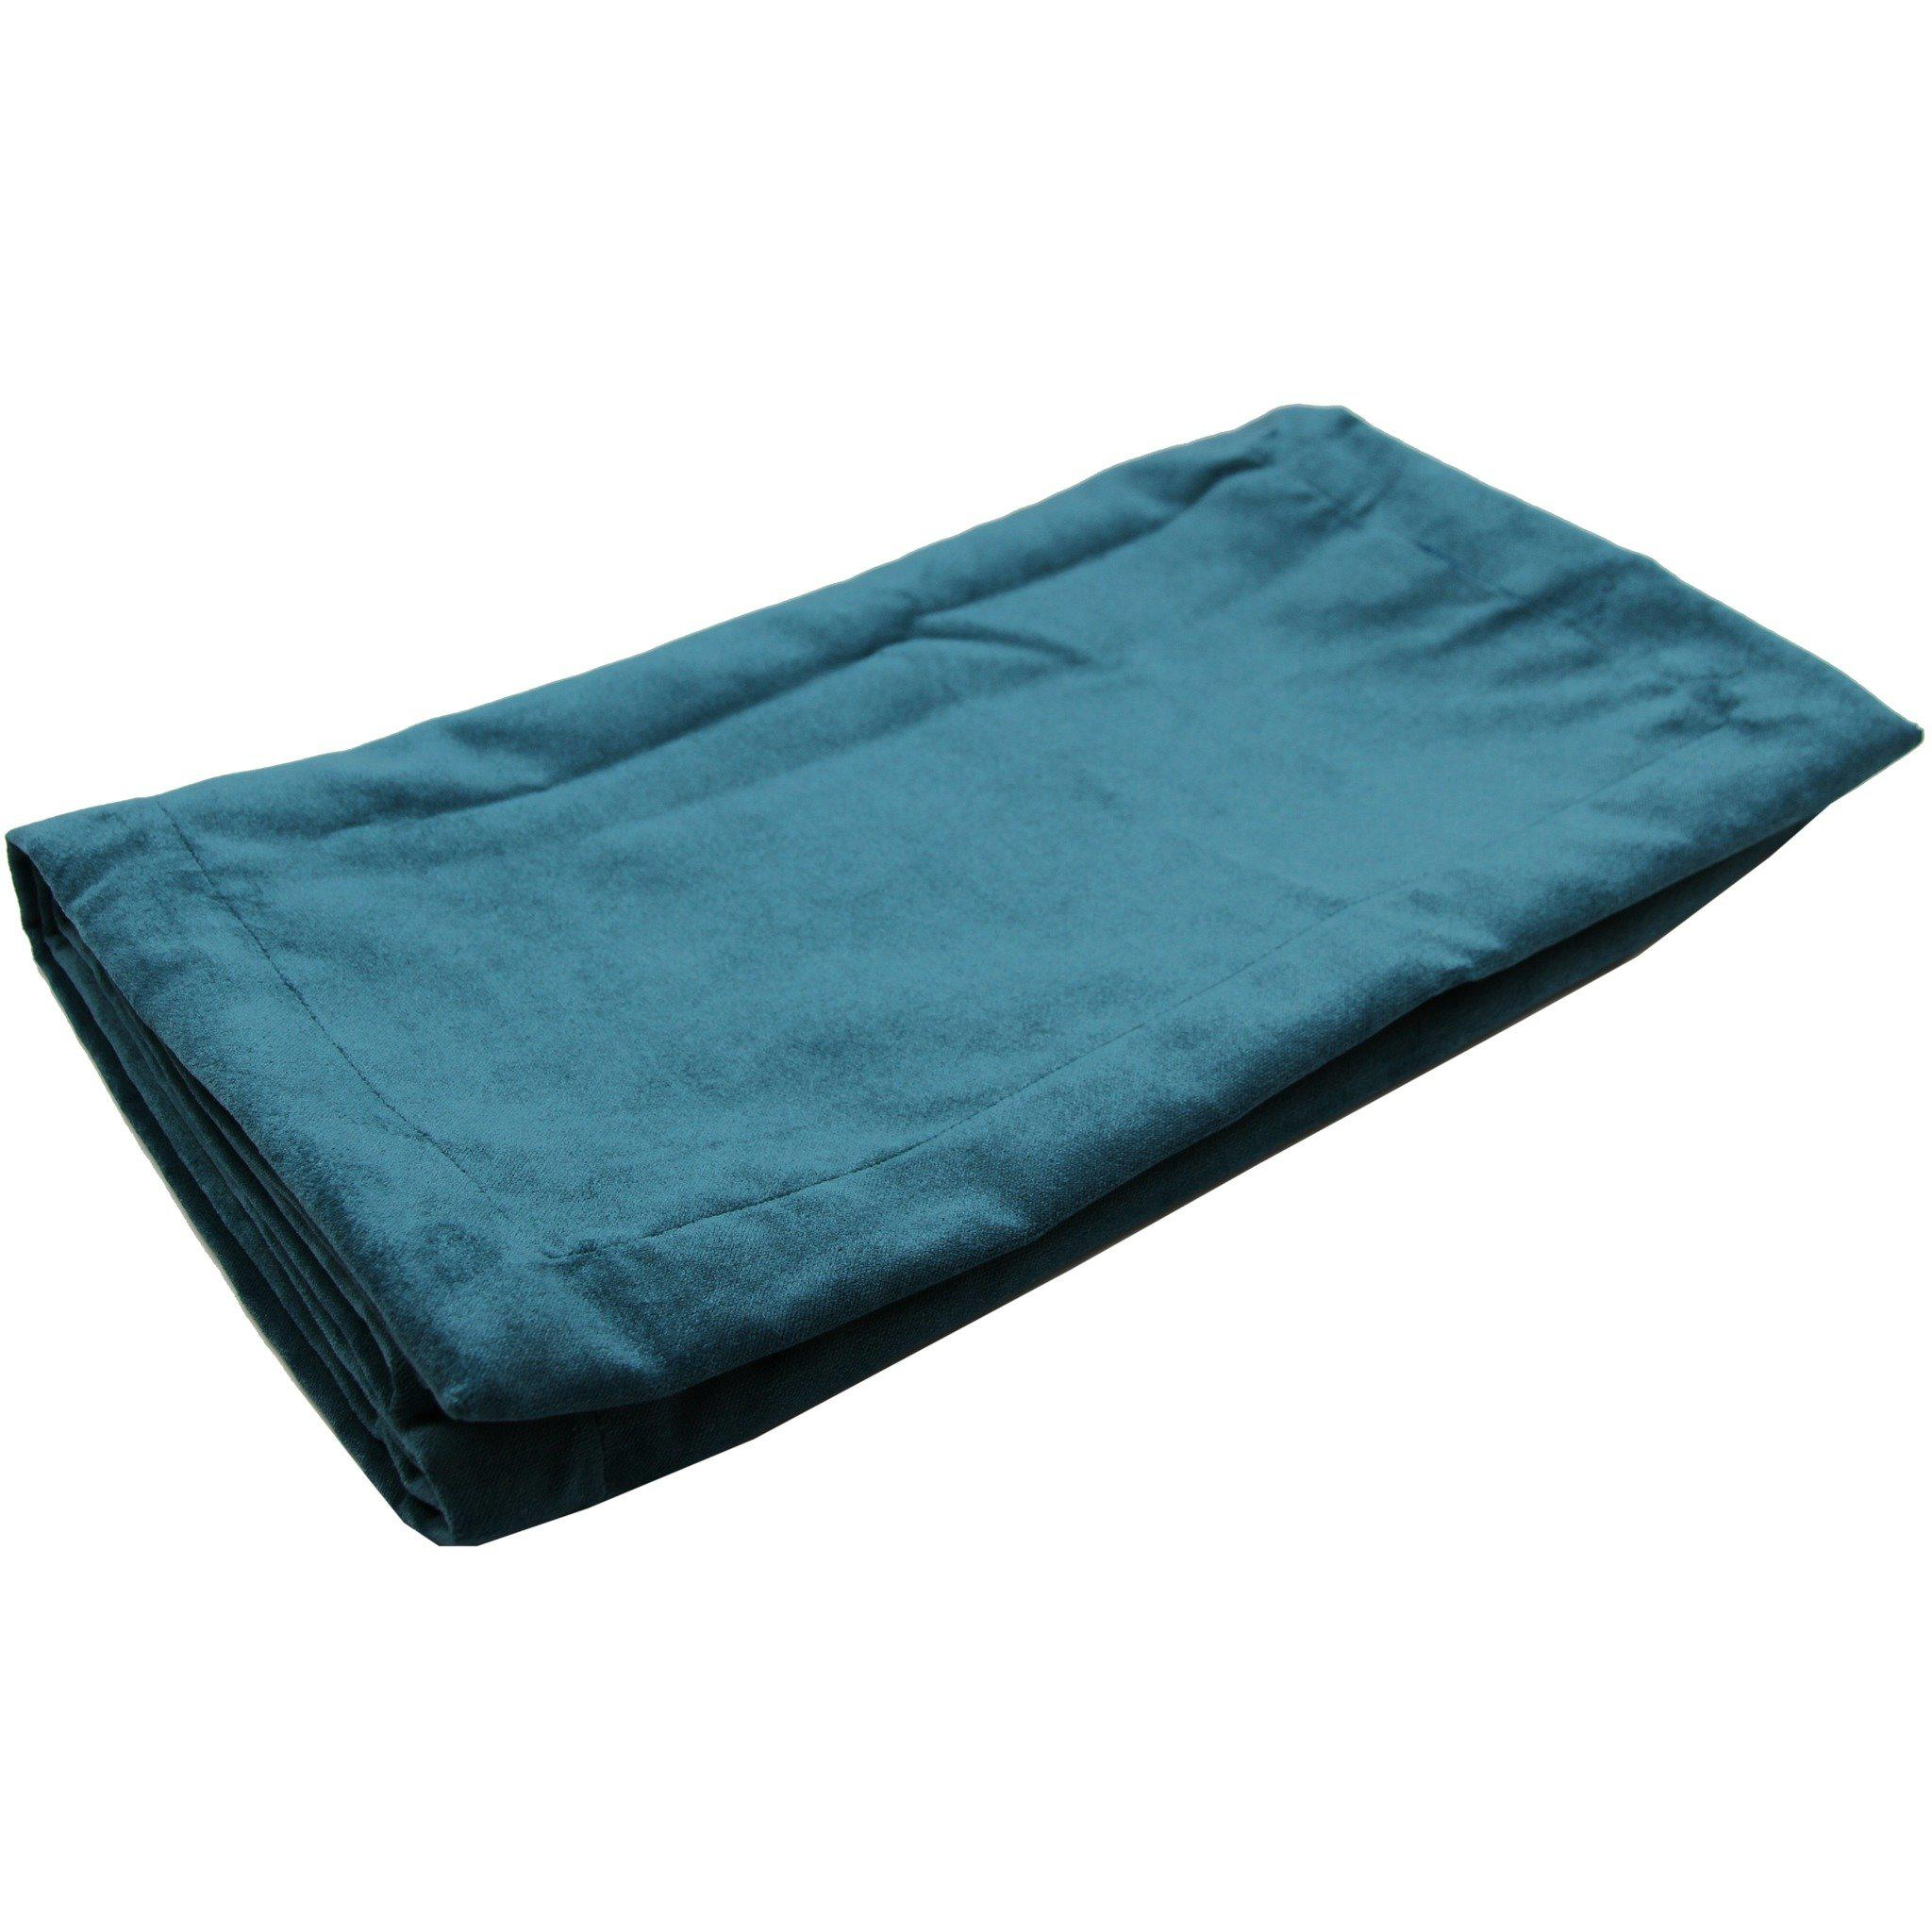 McAlister Textiles Matt Blue Teal Velvet Throw Blankets & Runners Throws and Runners Bed Runner (50cm x 240cm)